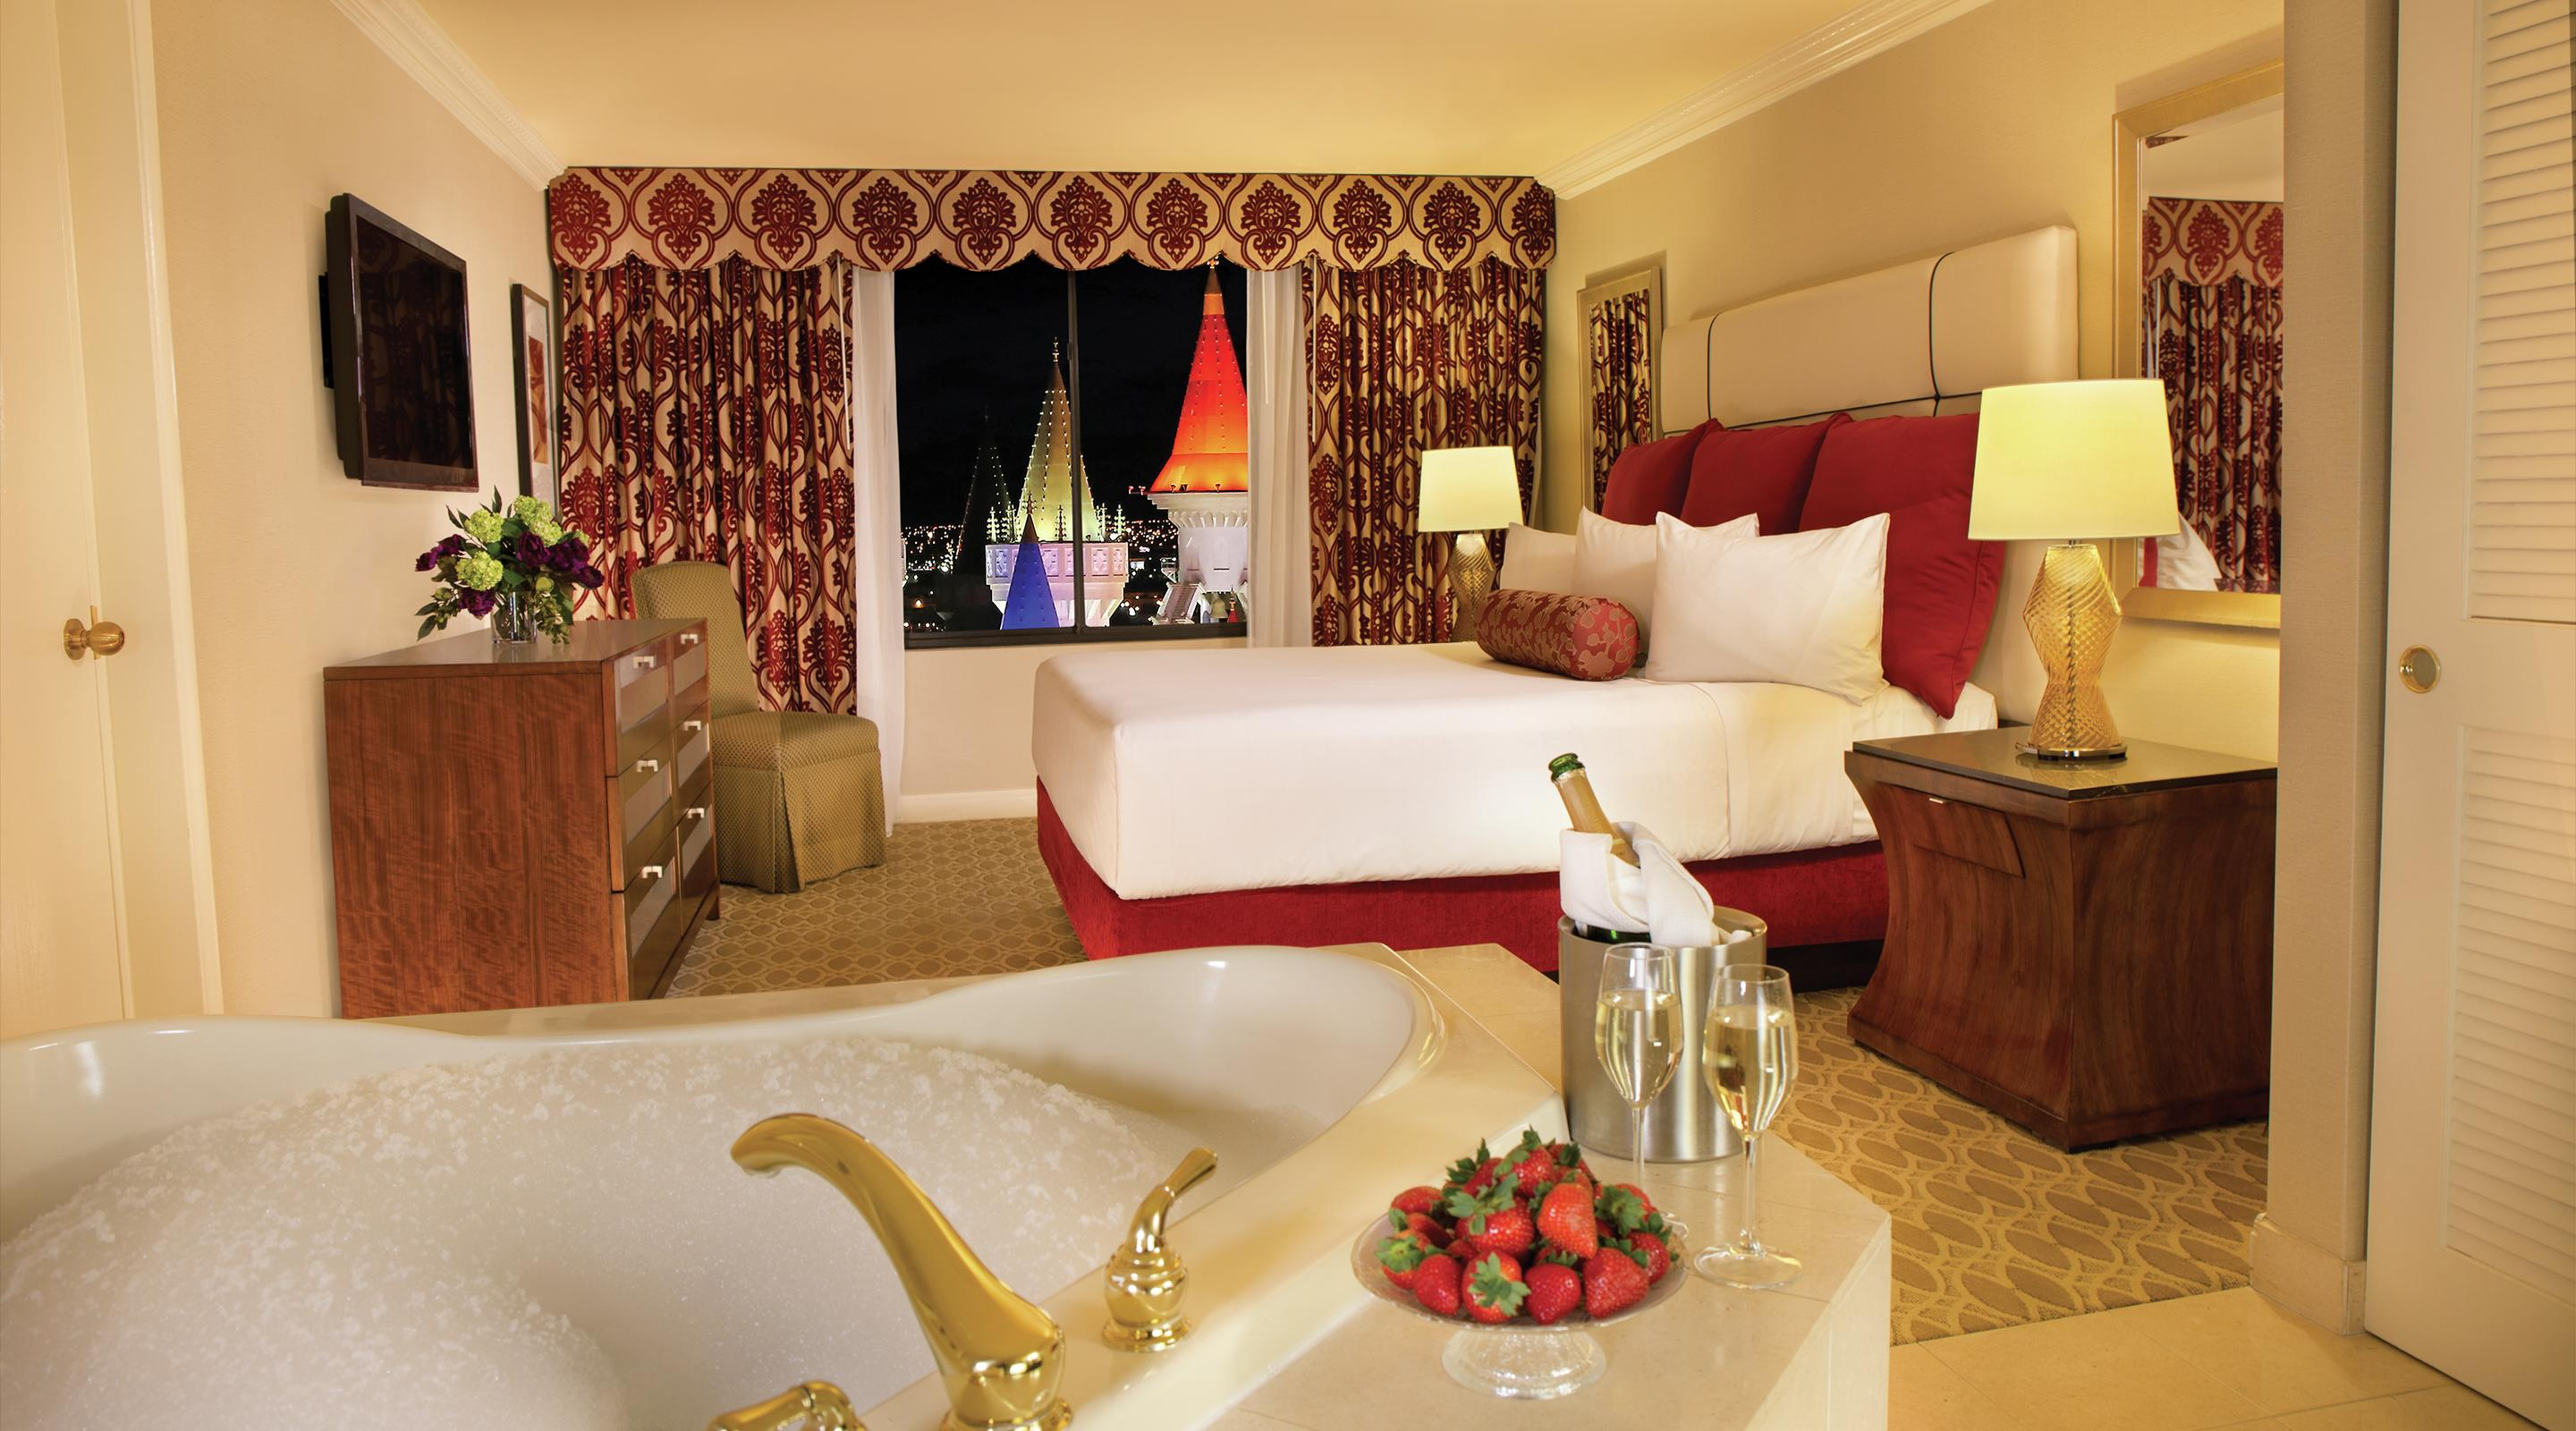 This is an image of the Royal Luxury Suite Bedroom.